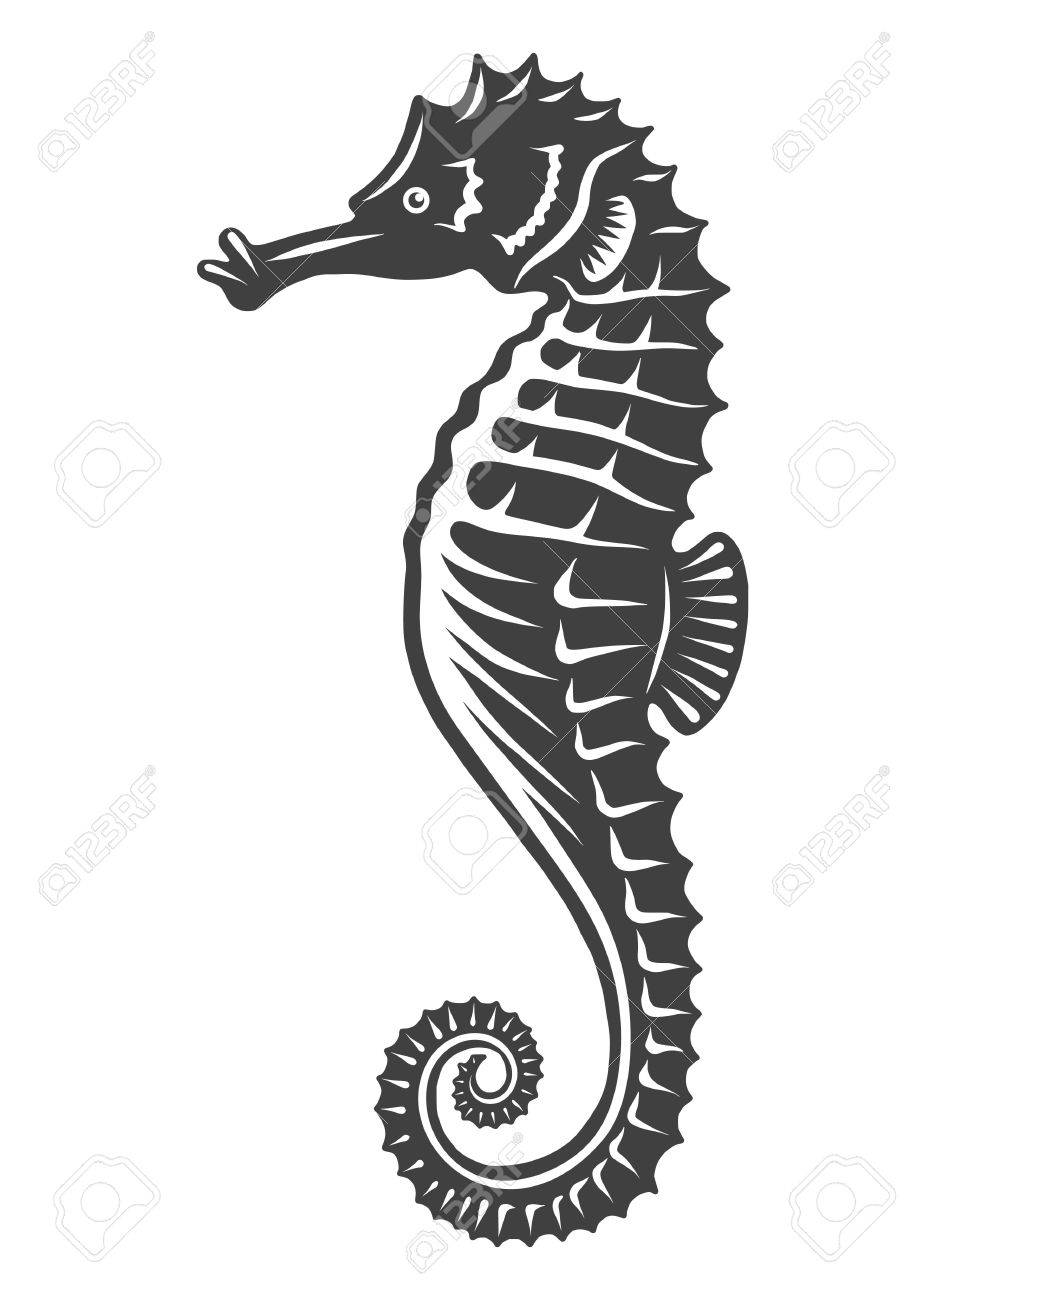 Monochrome Sea Horse Icon Isolated On White Background Royalty Free Cliparts Vectors And Stock Illustration Image 69102830